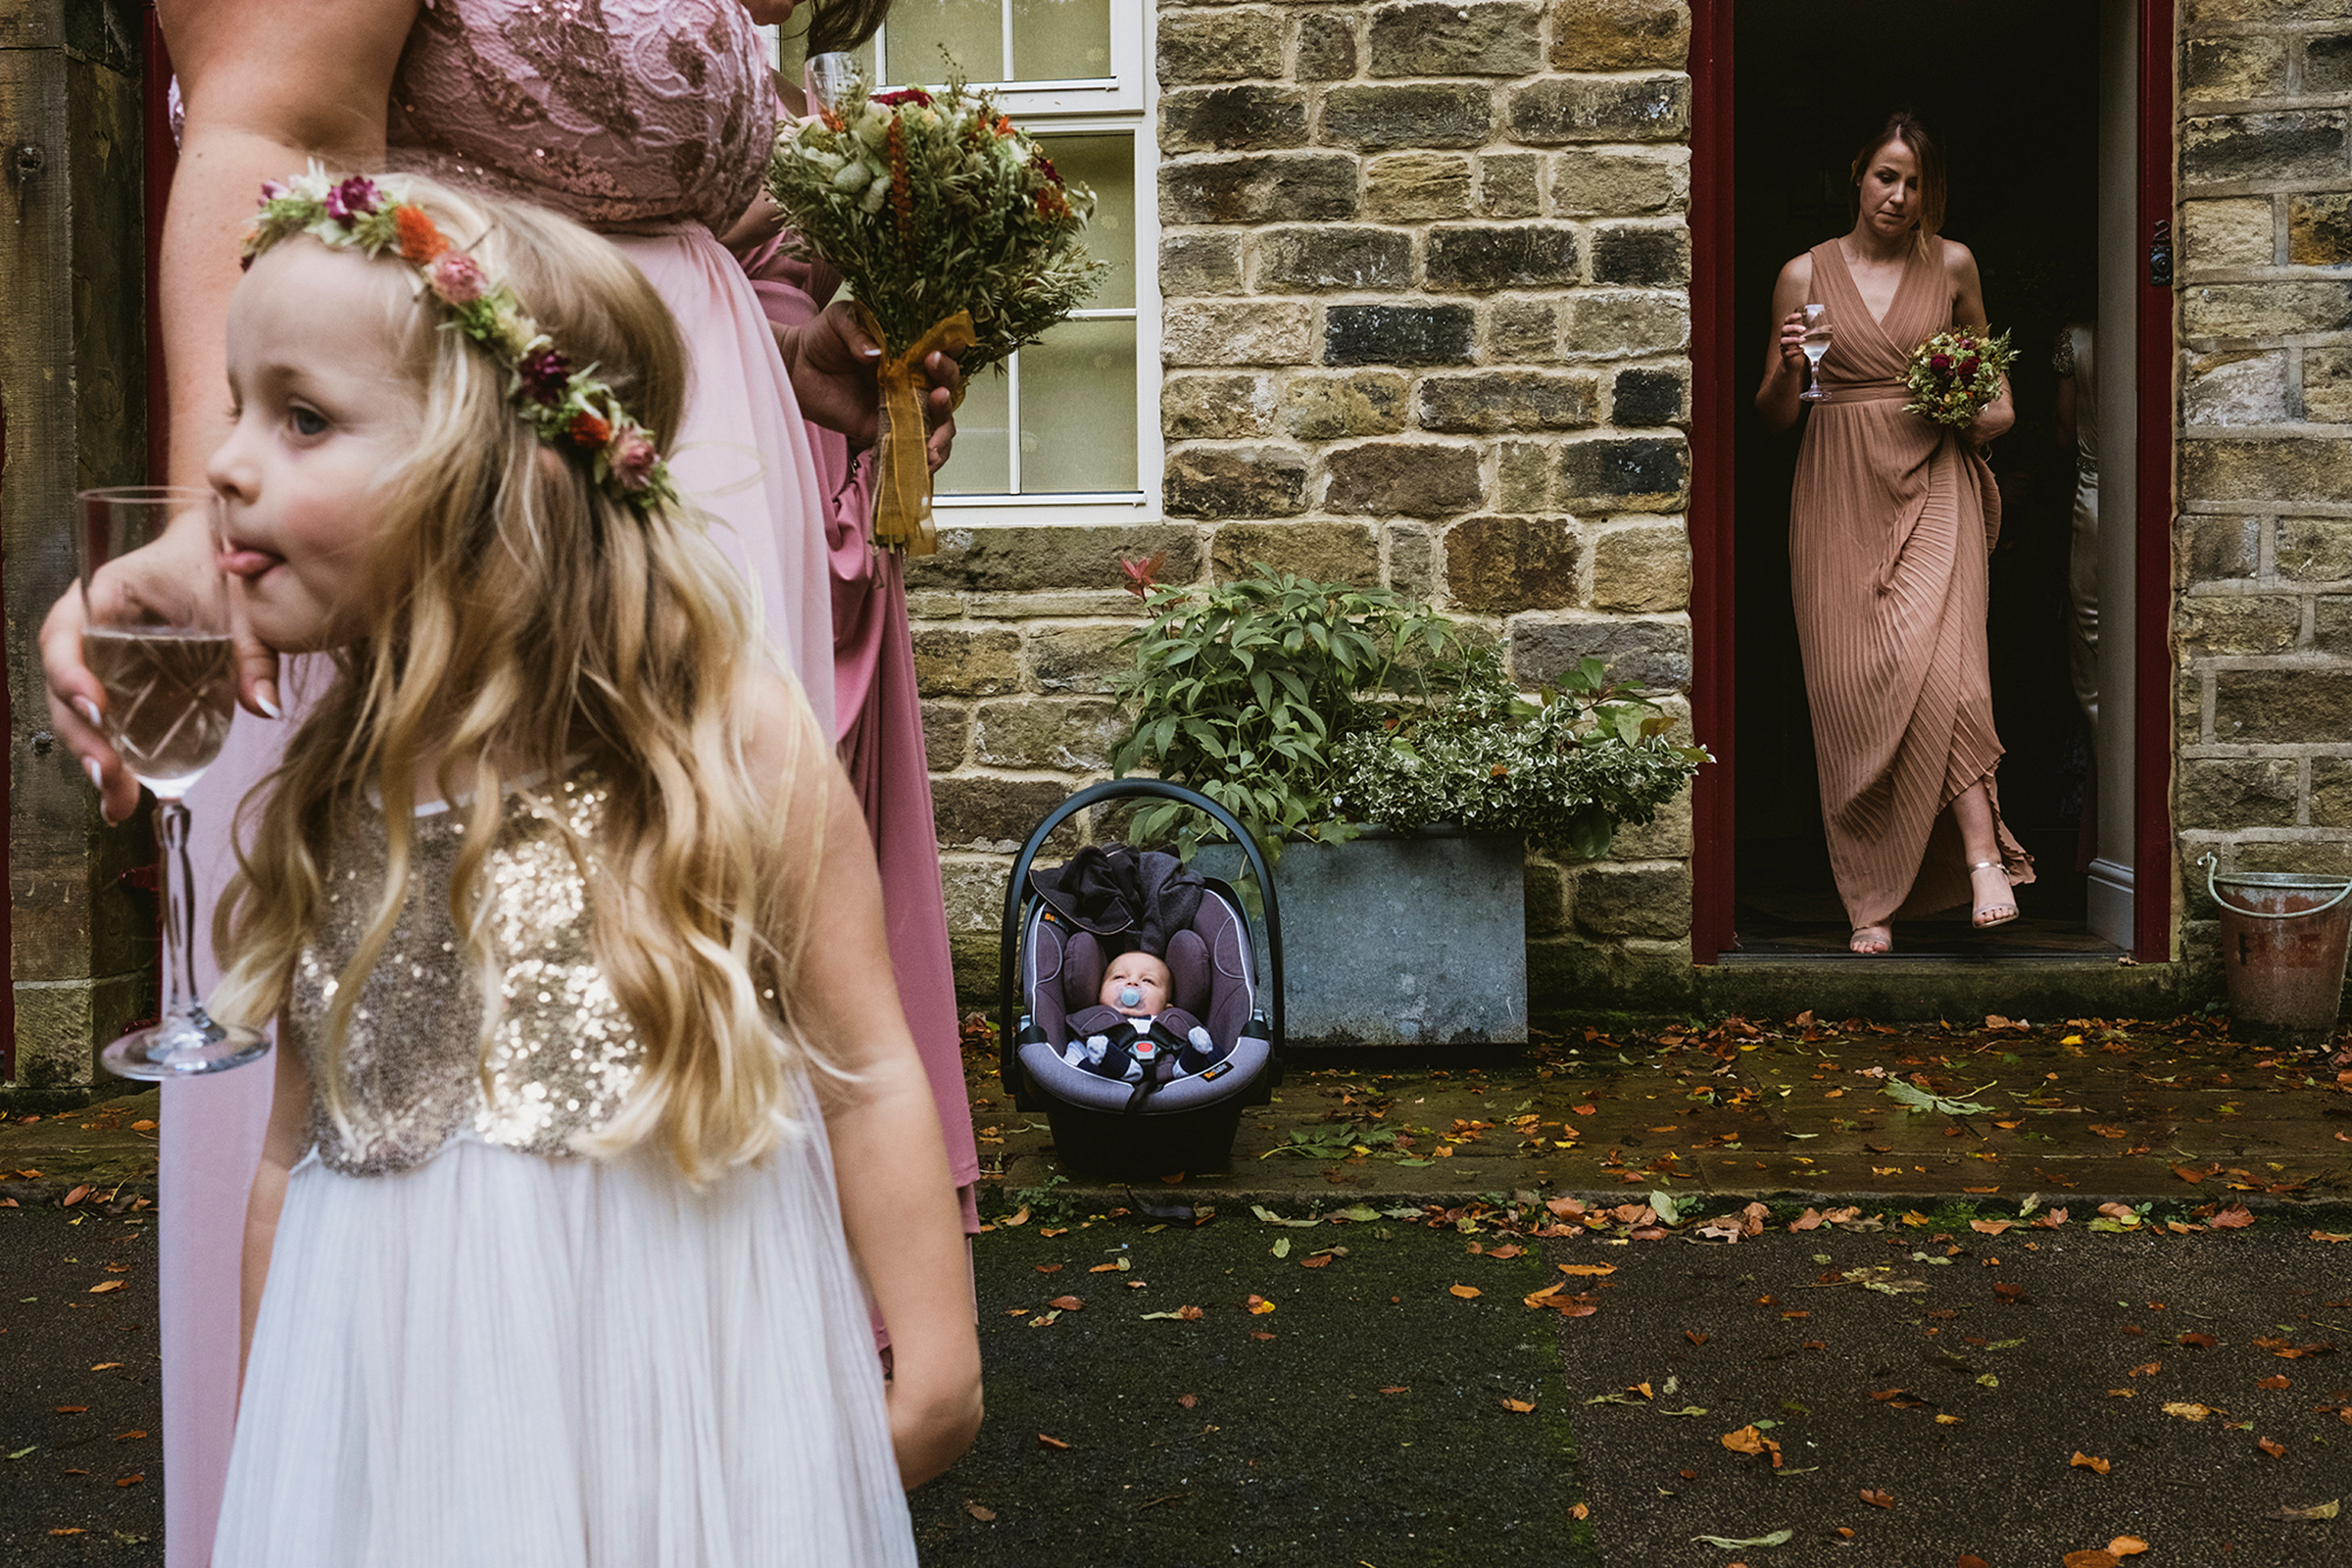 Funny scene of flower girl with bridesmaids with wine glasses - photo by York Place Studios